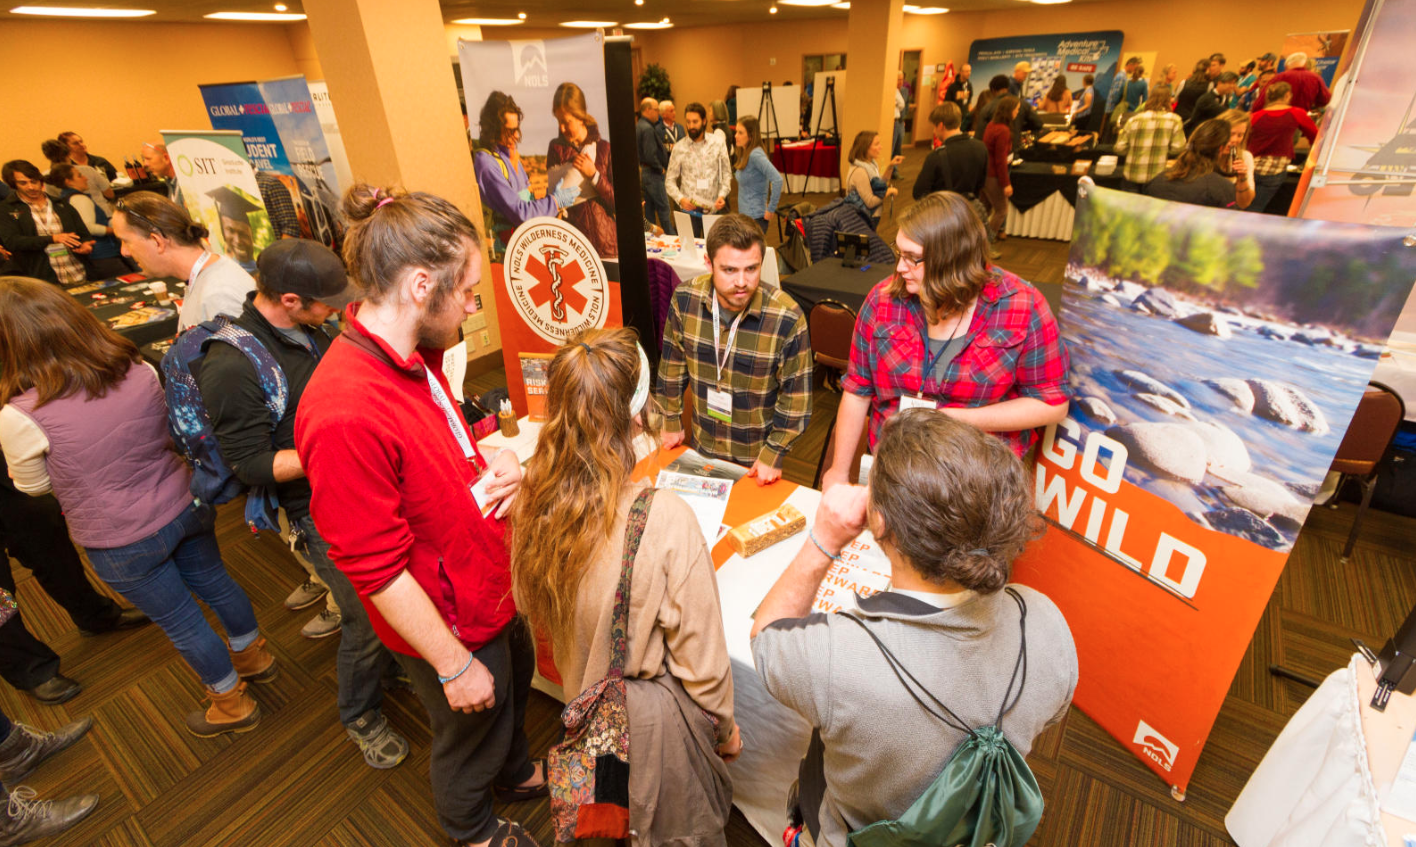 Attendees at 2017 WRMC NOLS exhibitor booth.